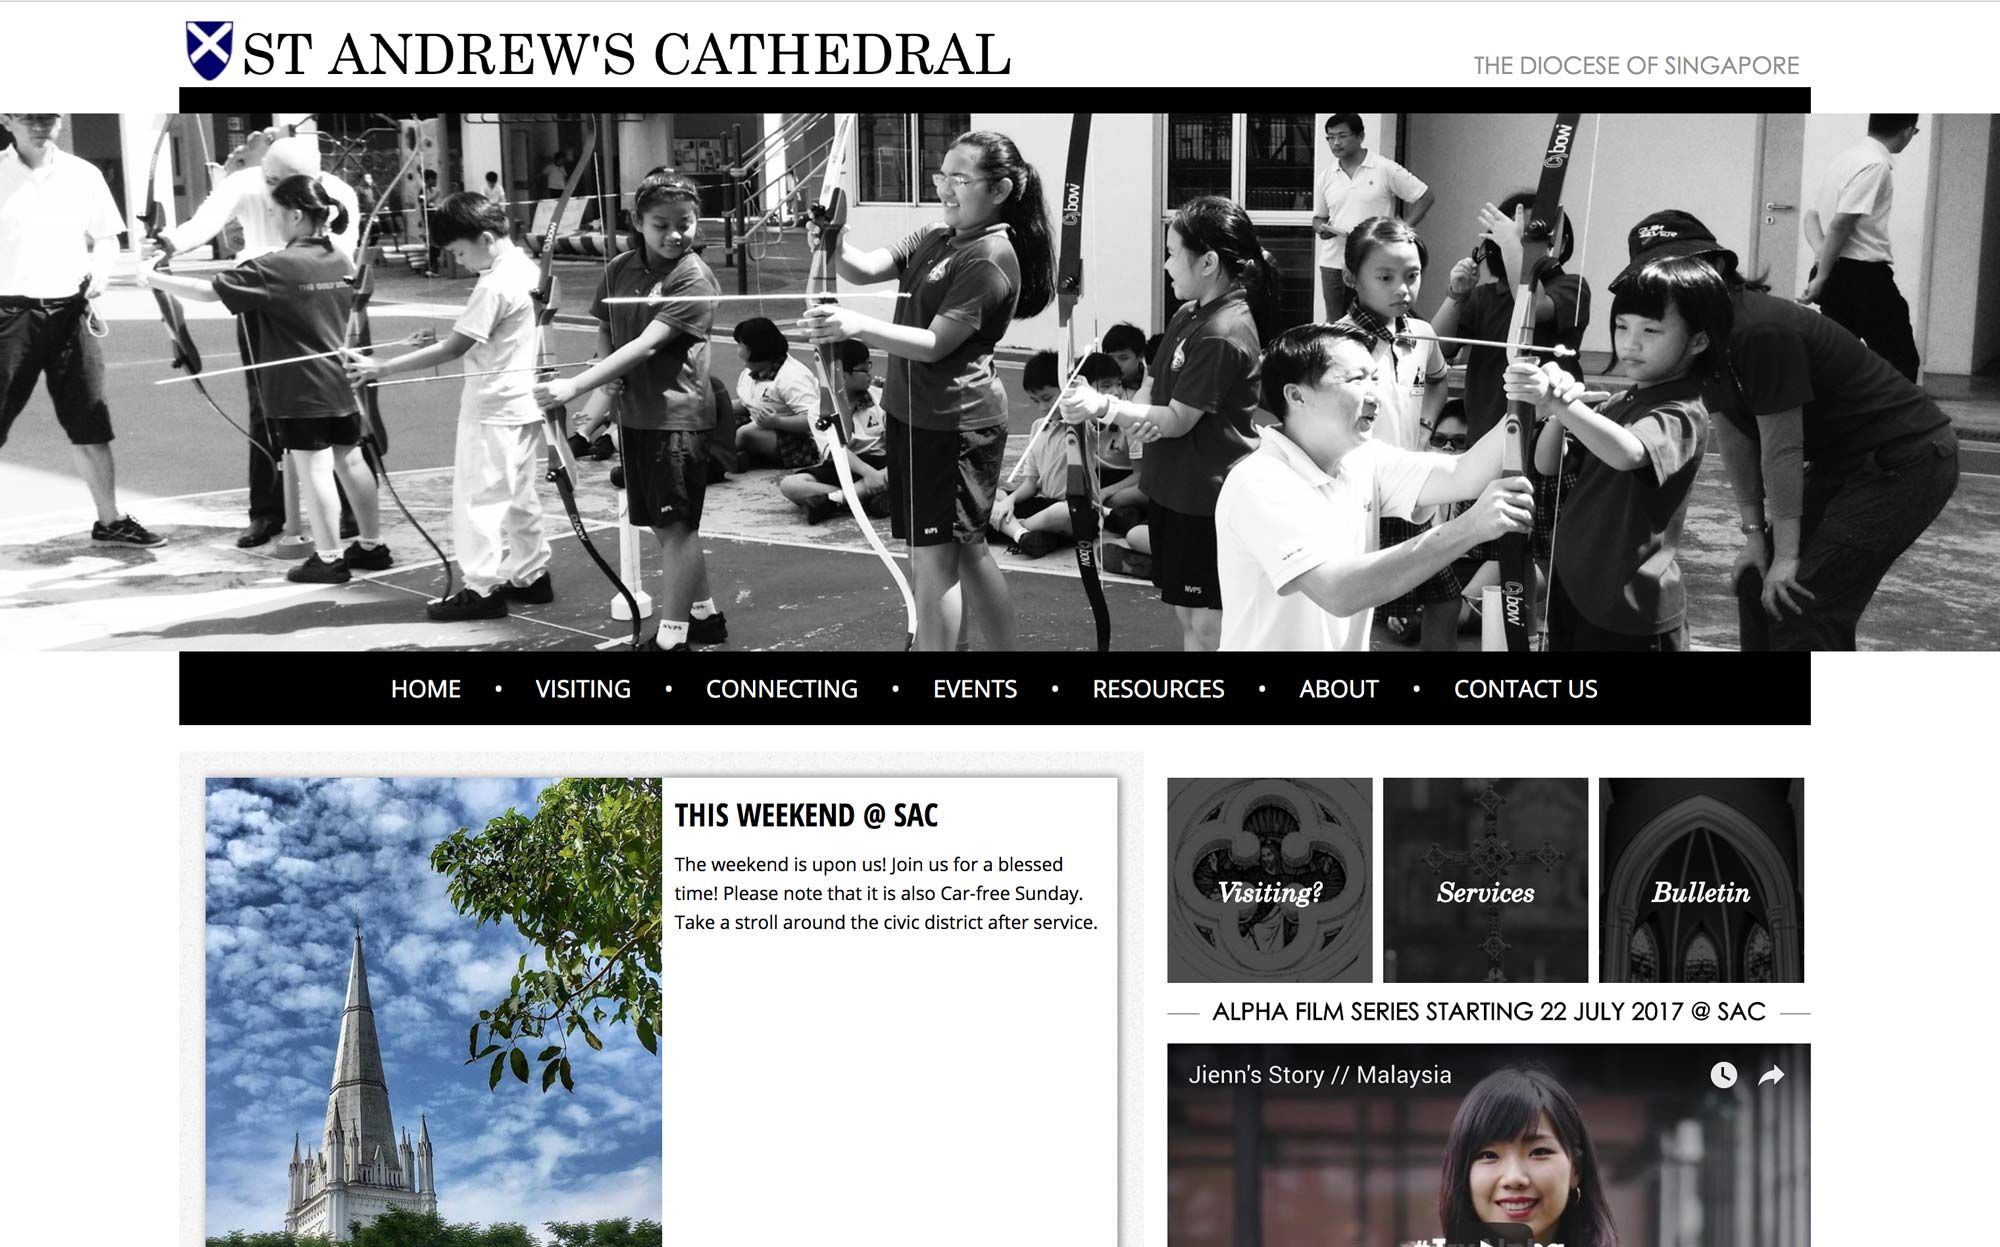 Screenshot of St. Andrew's Cathedral website home page